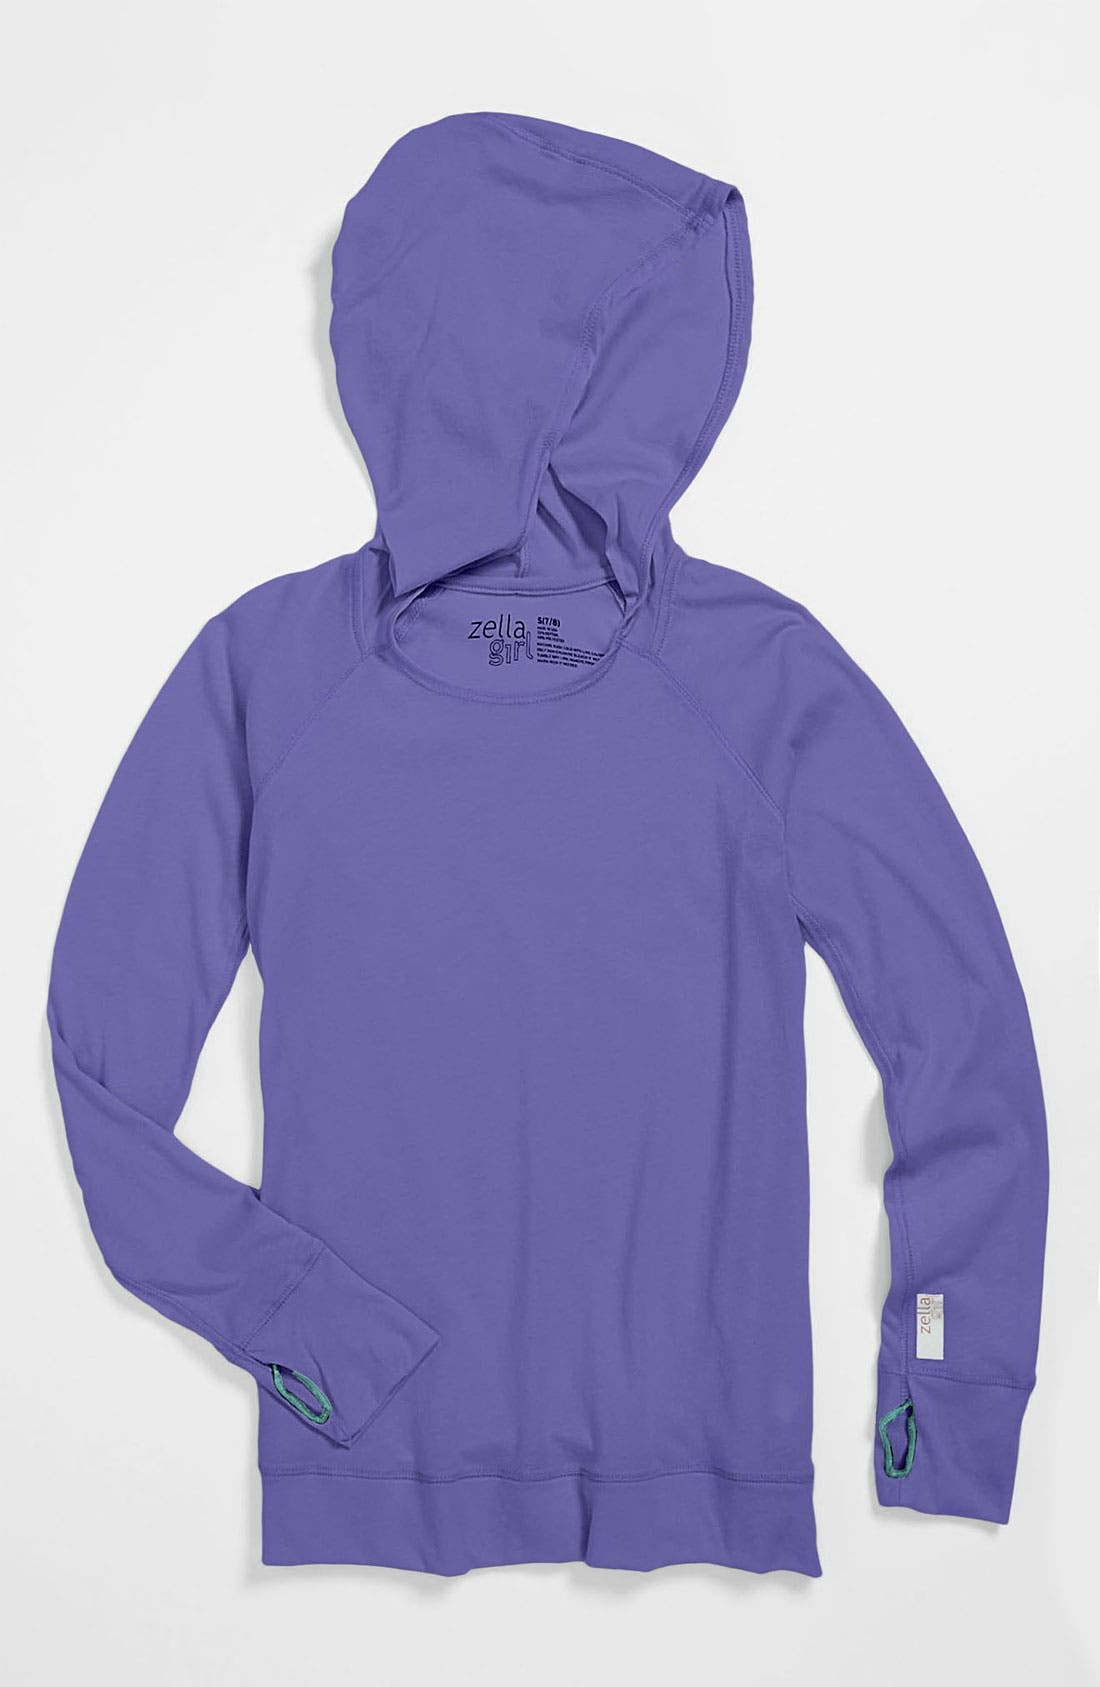 Alternate Image 1 Selected - Zella Girl 'Sporty' Hooded Tunic Tee (Little Girls & Big Girls)